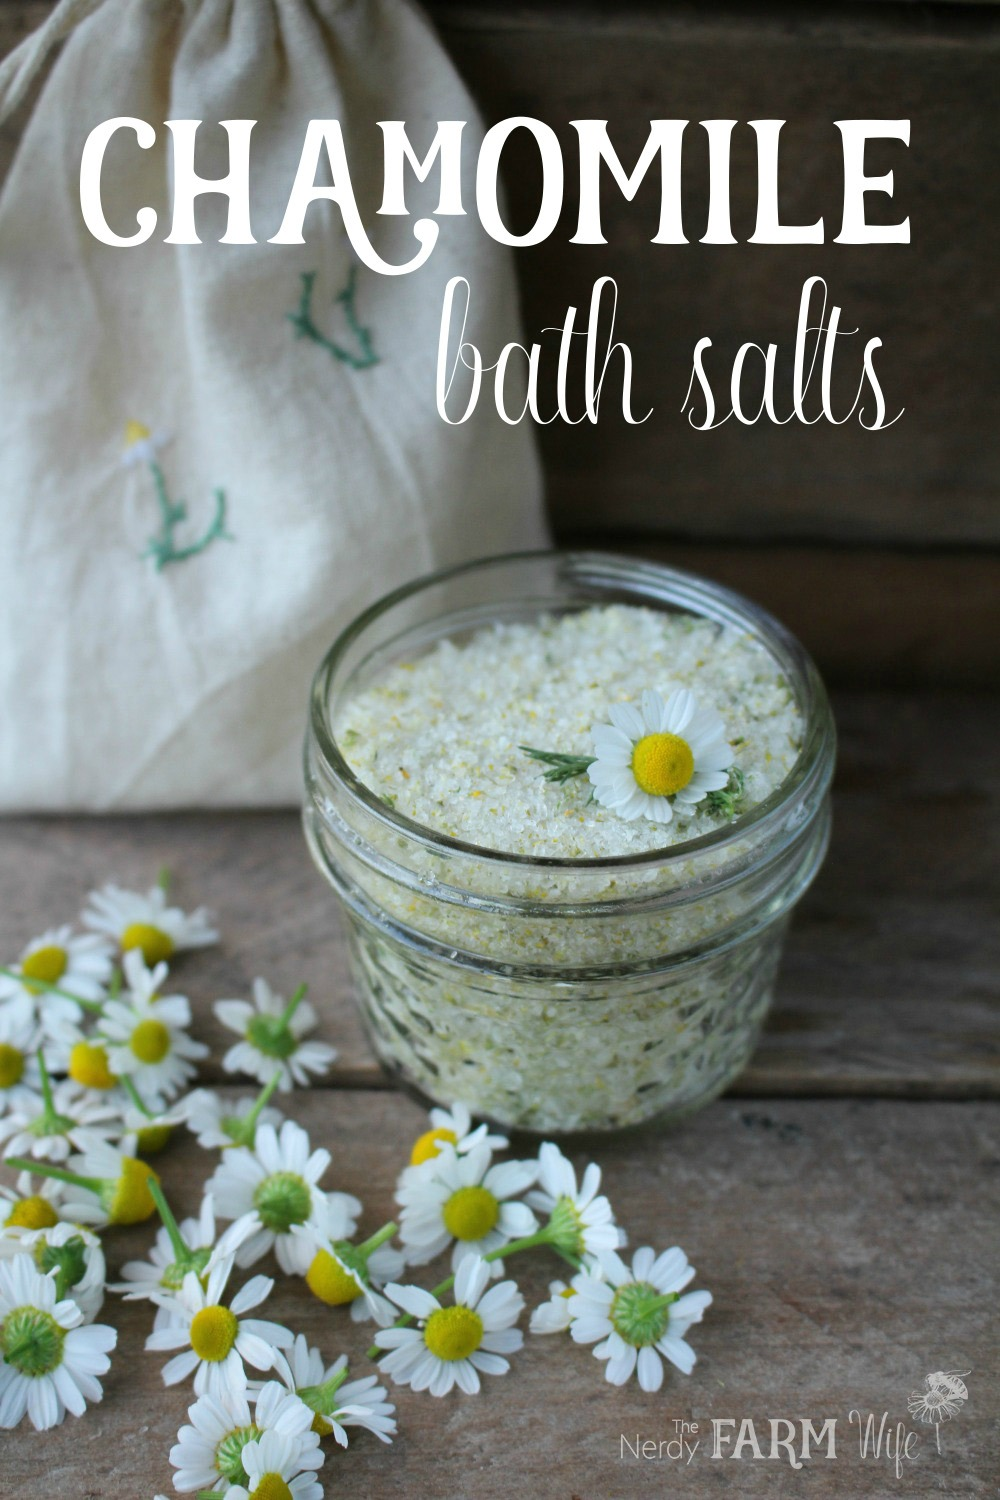 How to make DIY Chamomile Bath Salts